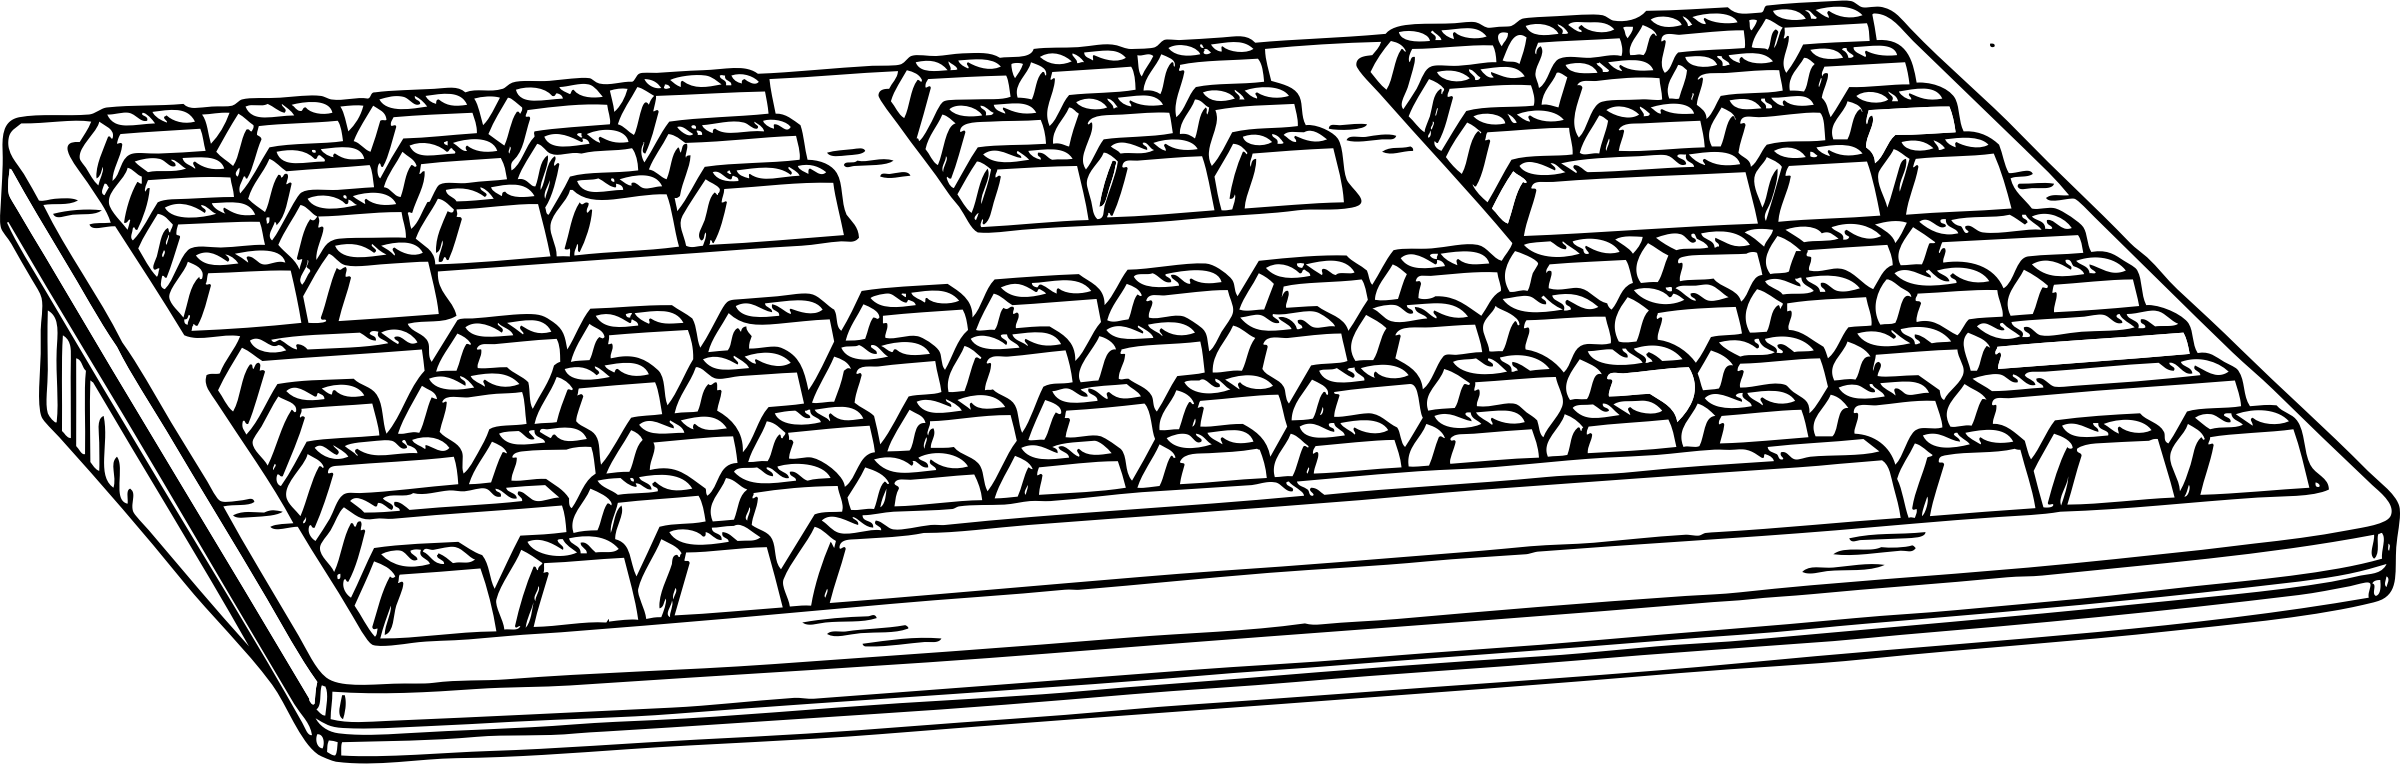 Clipart computer coloring.  collection of keyboard